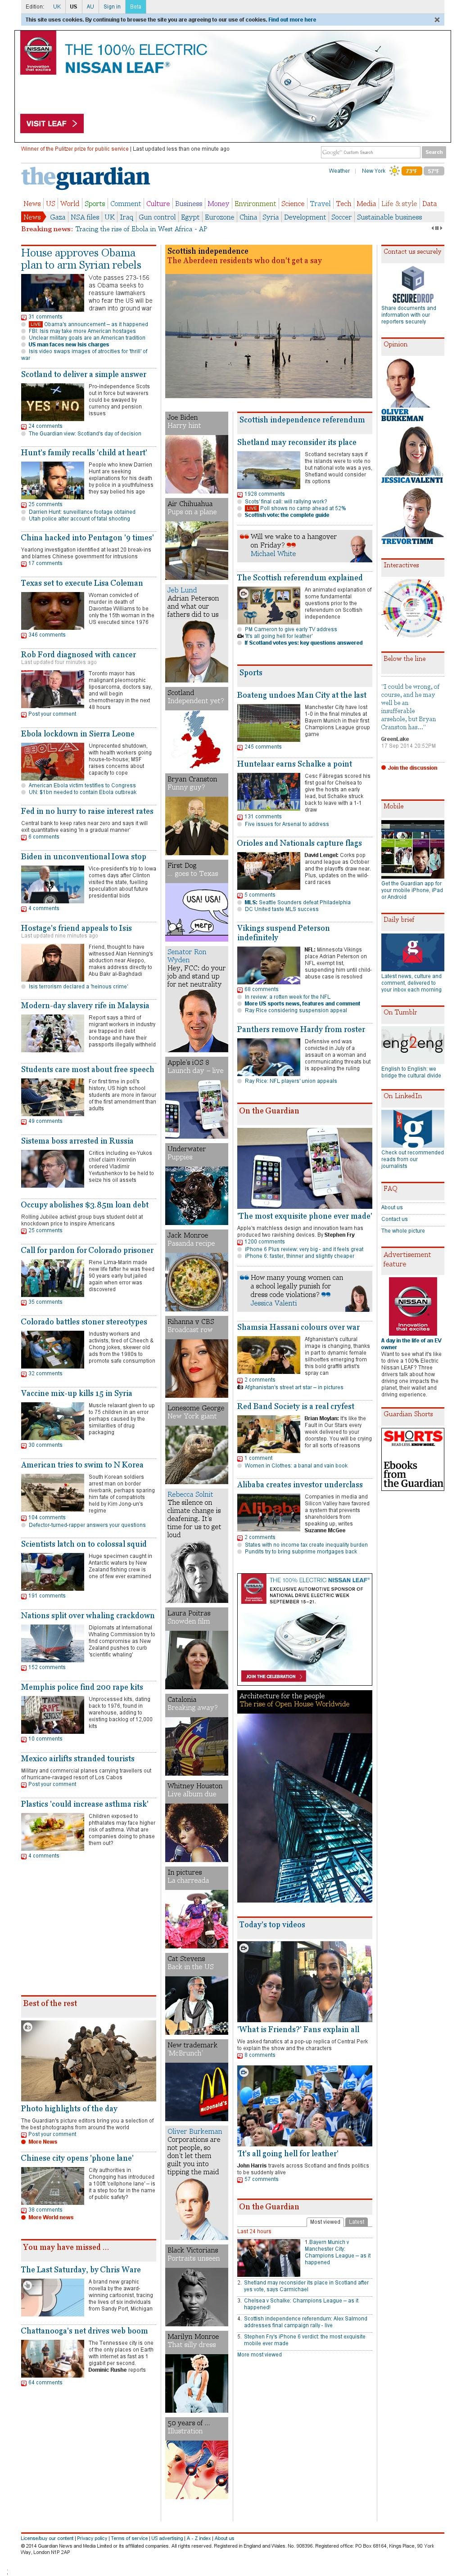 The Guardian at Wednesday Sept. 17, 2014, 10:08 p.m. UTC